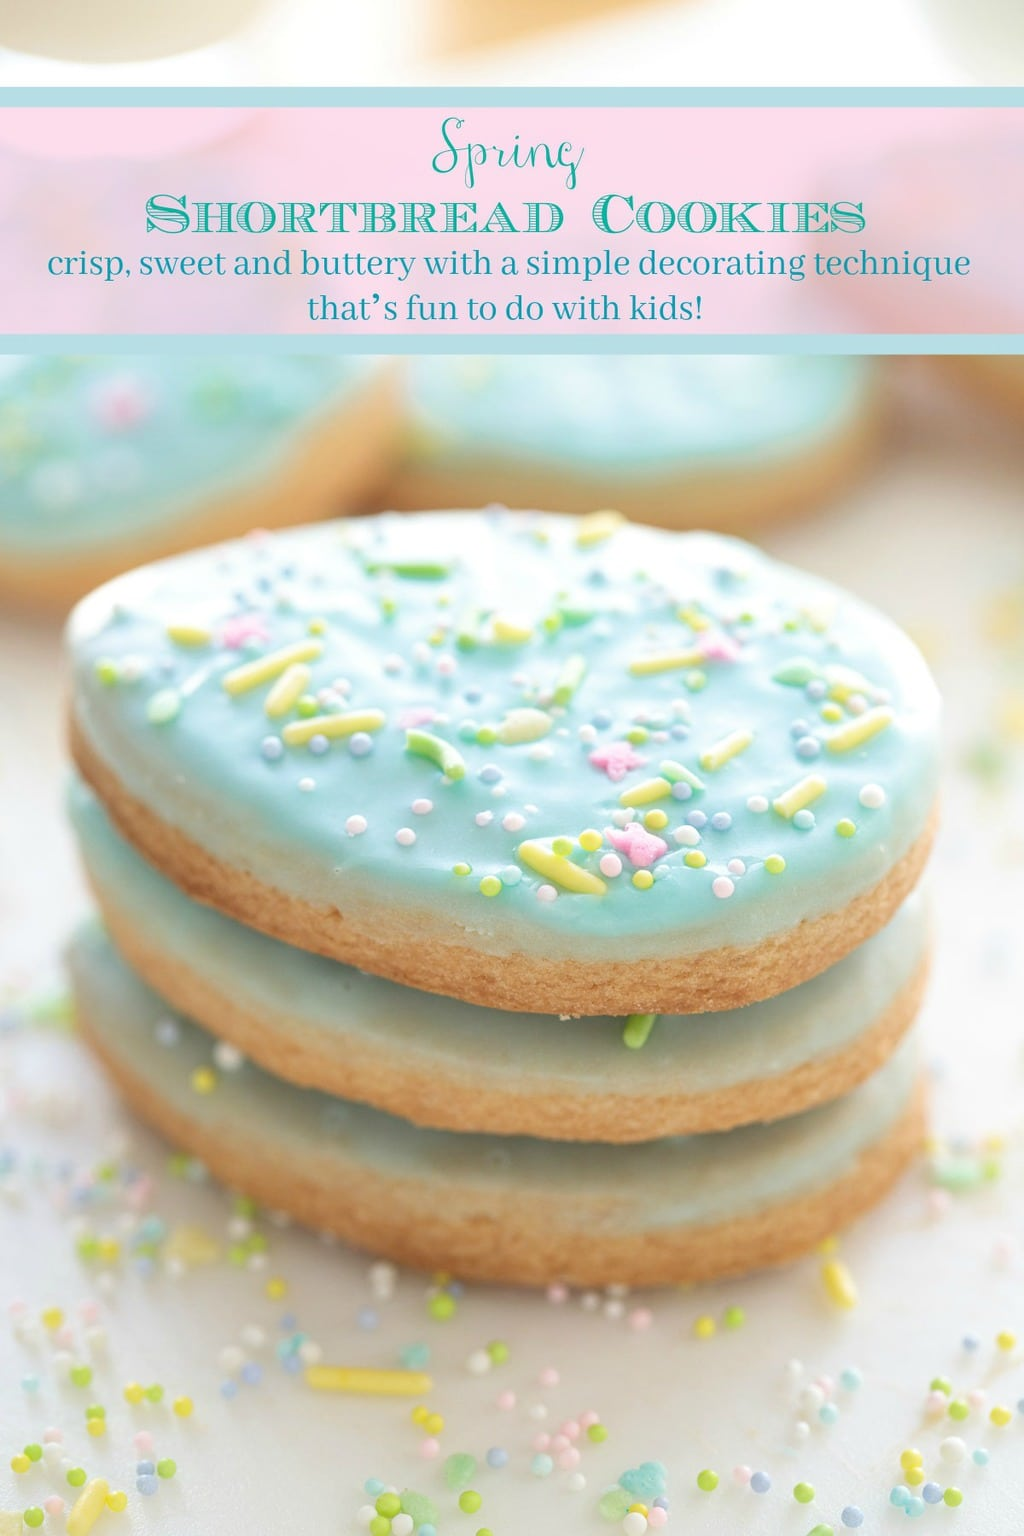 These delicious Spring Shortbread Cookies are crisp, buttery and have a simple decorating technique that\'s fun to do with kids! #easterdessert #easter #eastercookies #easy #easydecorating #shortbread #glazedcookies